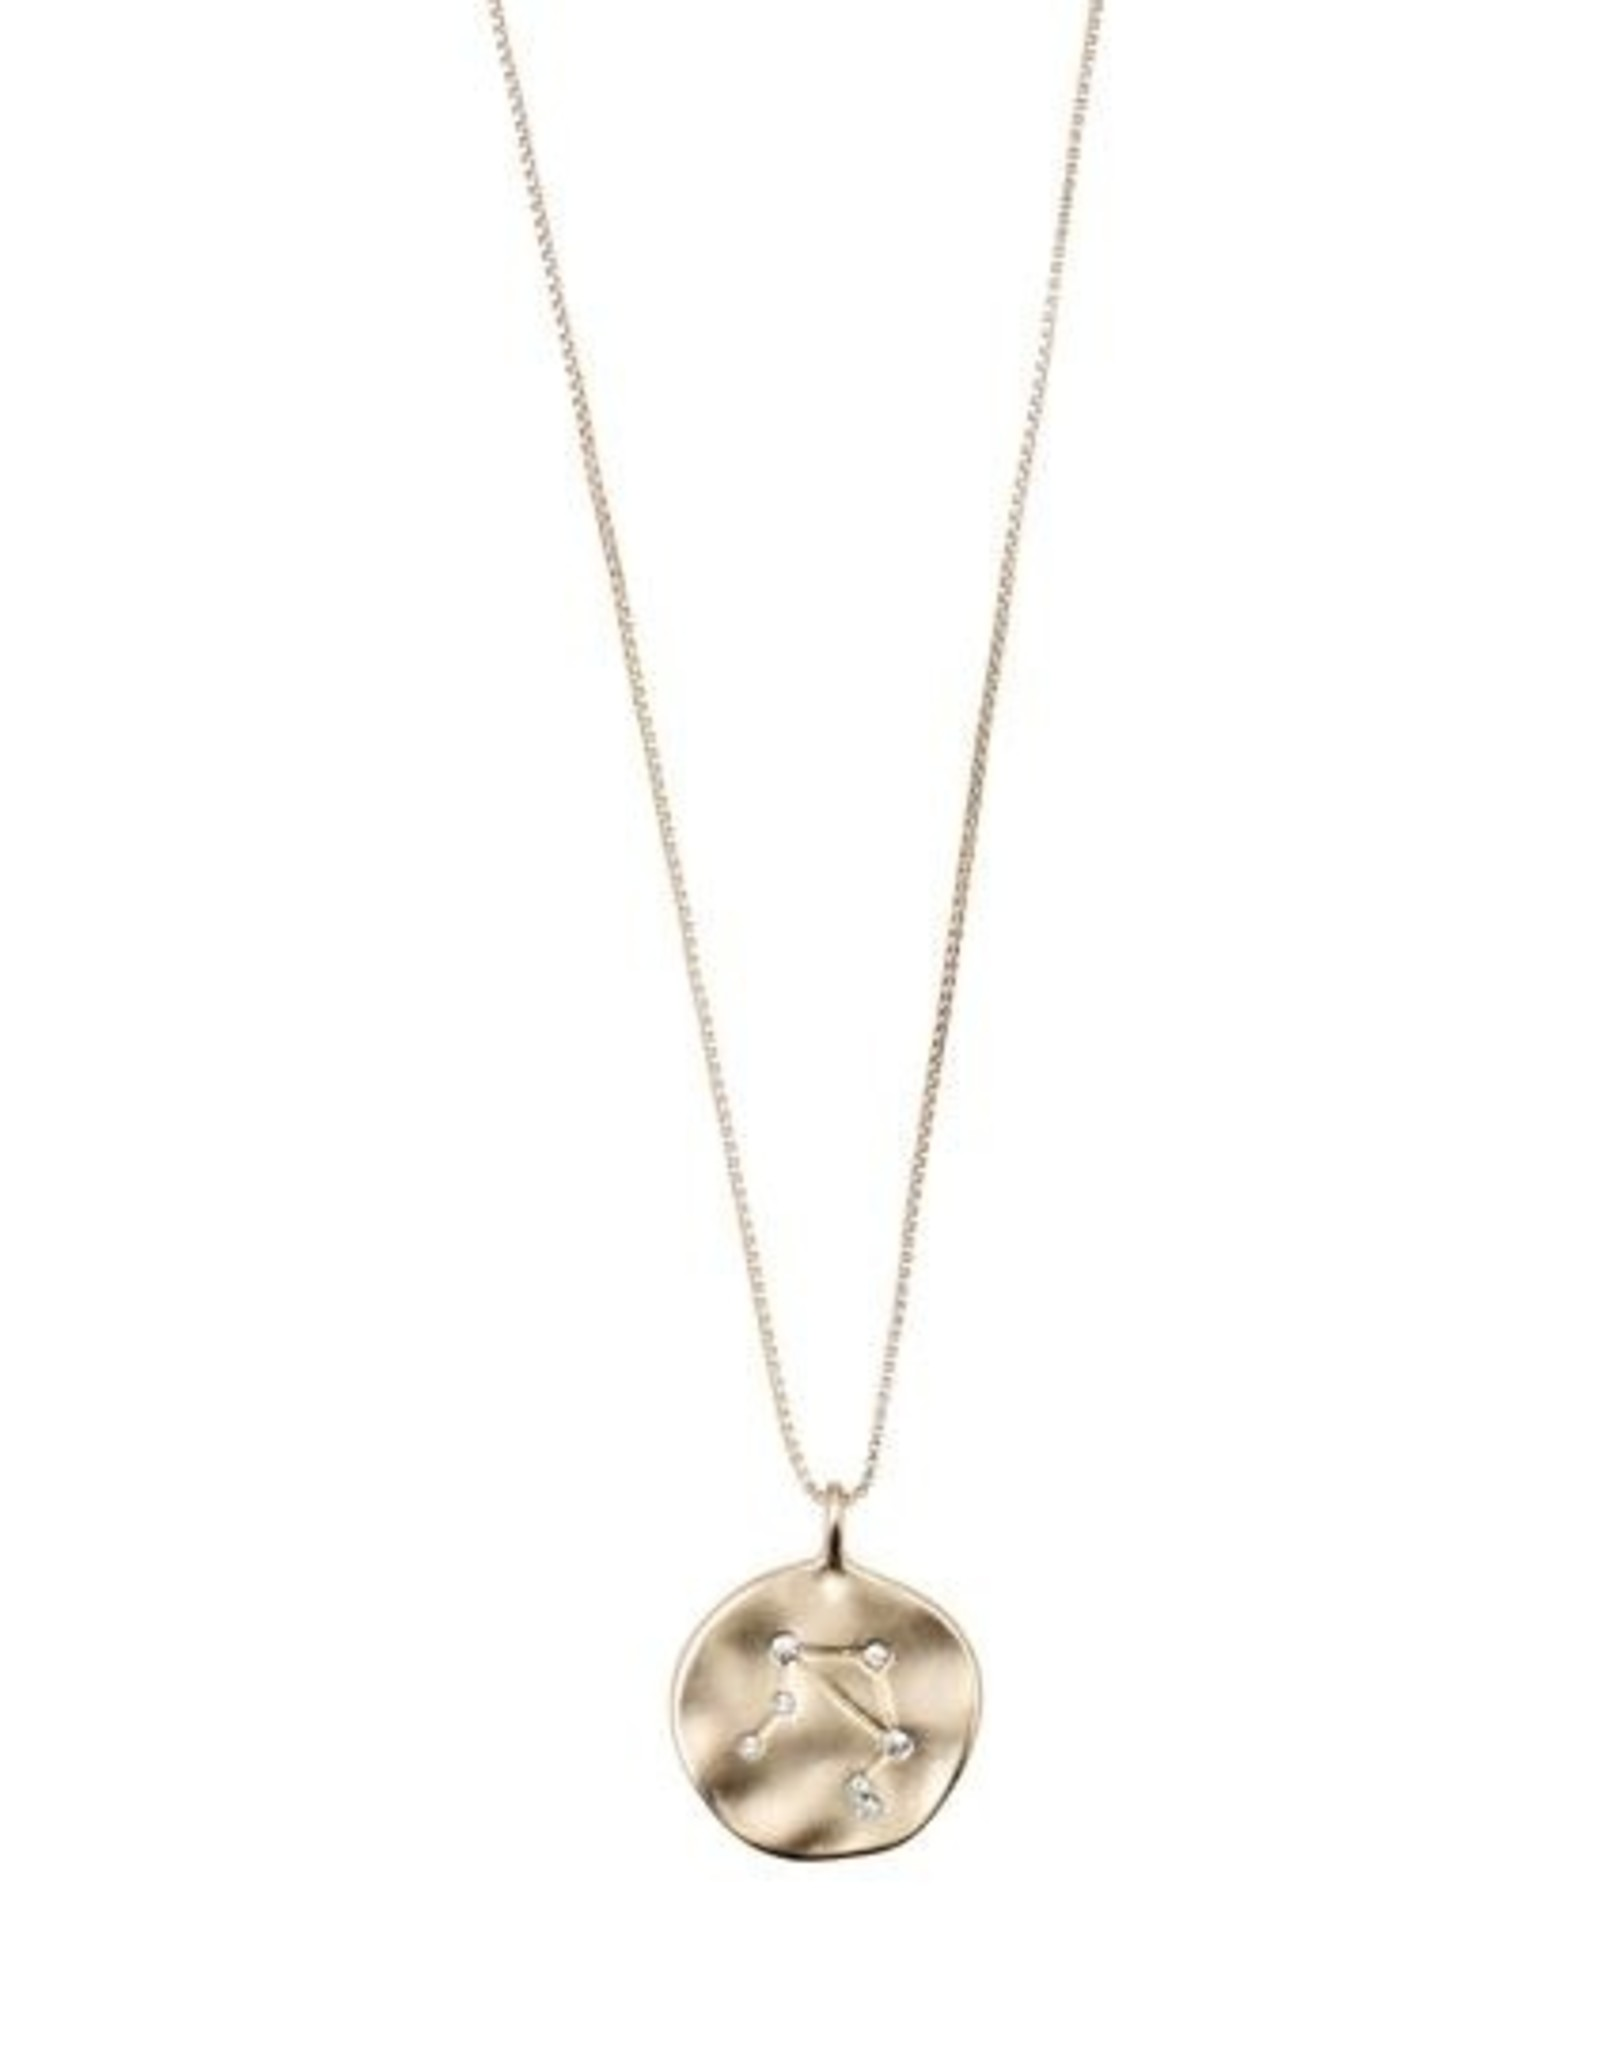 Pilgrim Astrological Necklace - Gold